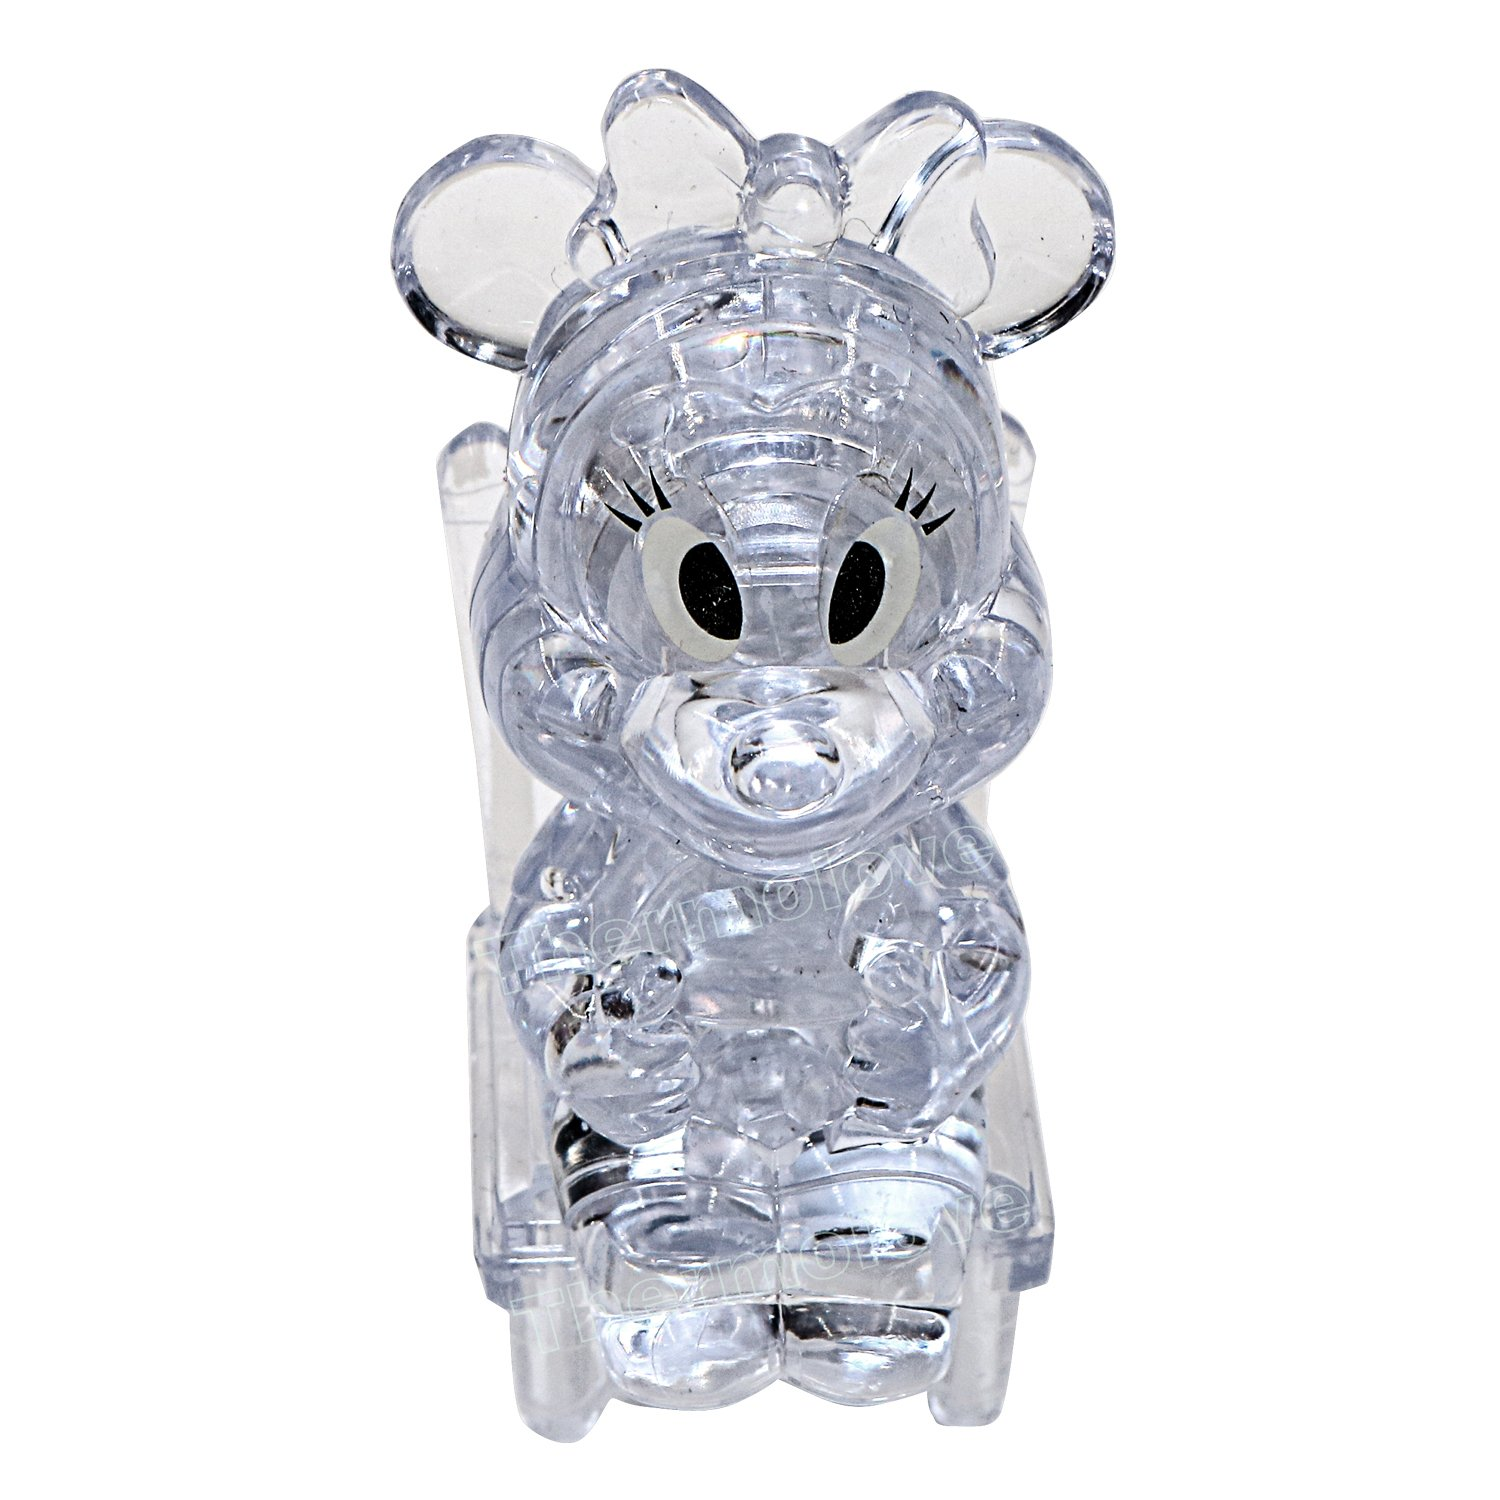 24 Thermolove 3D Decoration Model Toy Crystal Puzzle Game Toy Minnie-Transparent